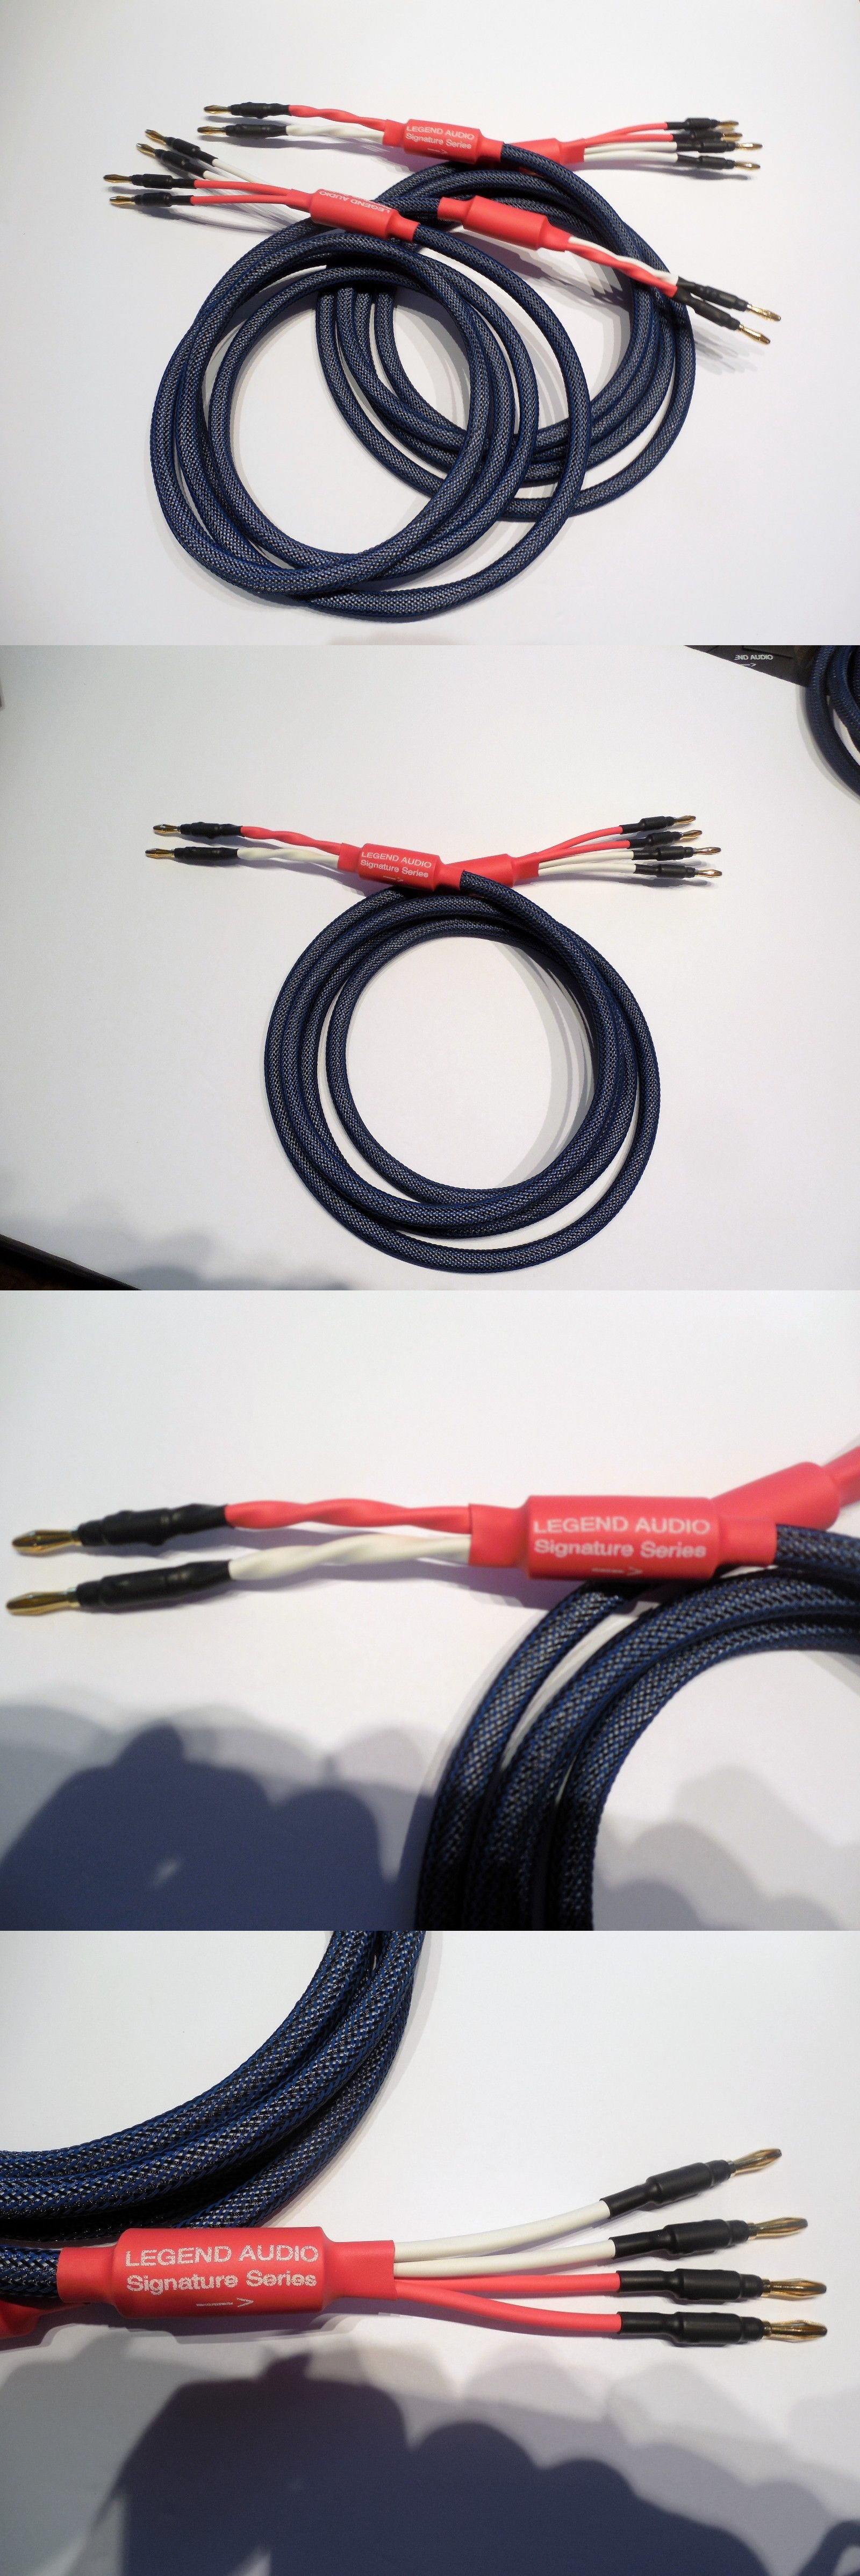 Contemporary Bi Wire Speaker Cables Review Photos - Electrical ...